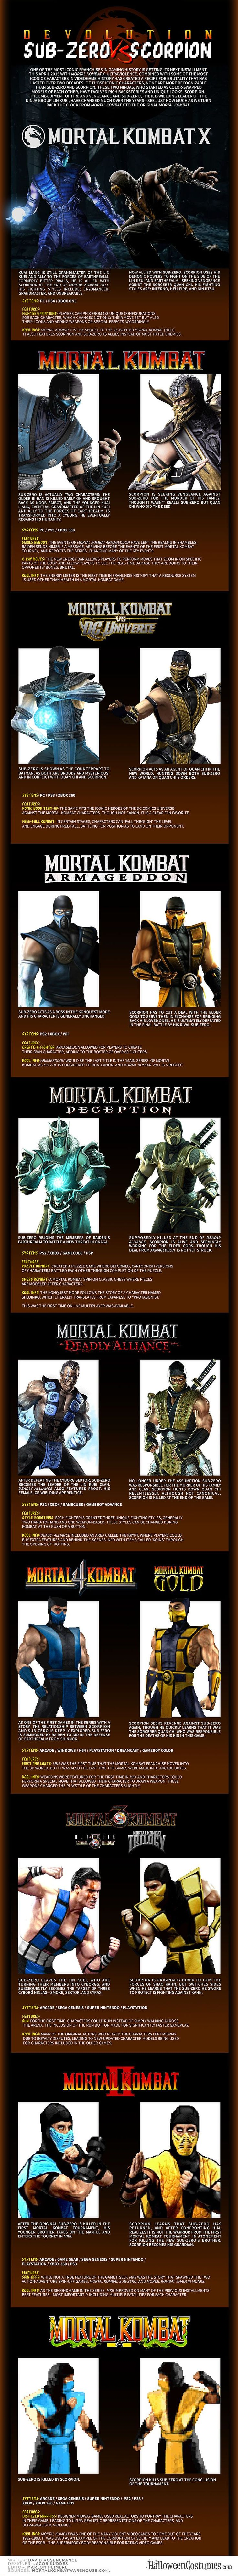 Mortal Kombat : Devolution Sub-Zero vs Scorpion